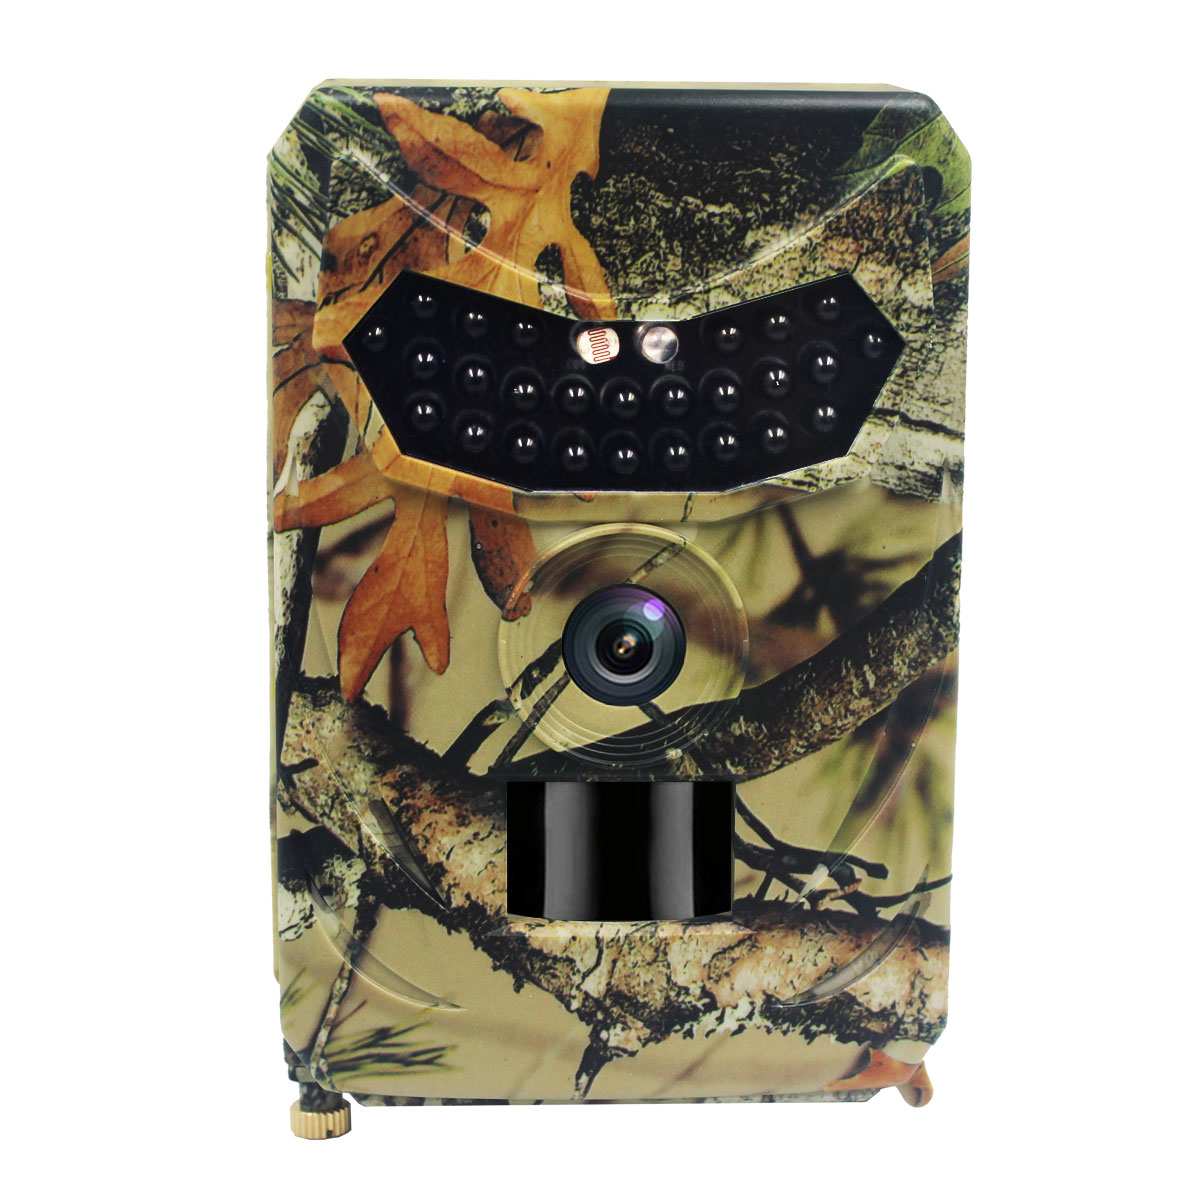 16mp HD 1080p Infrared Camera Outdoor Camera 16 Million Pixel Camera Camouflage